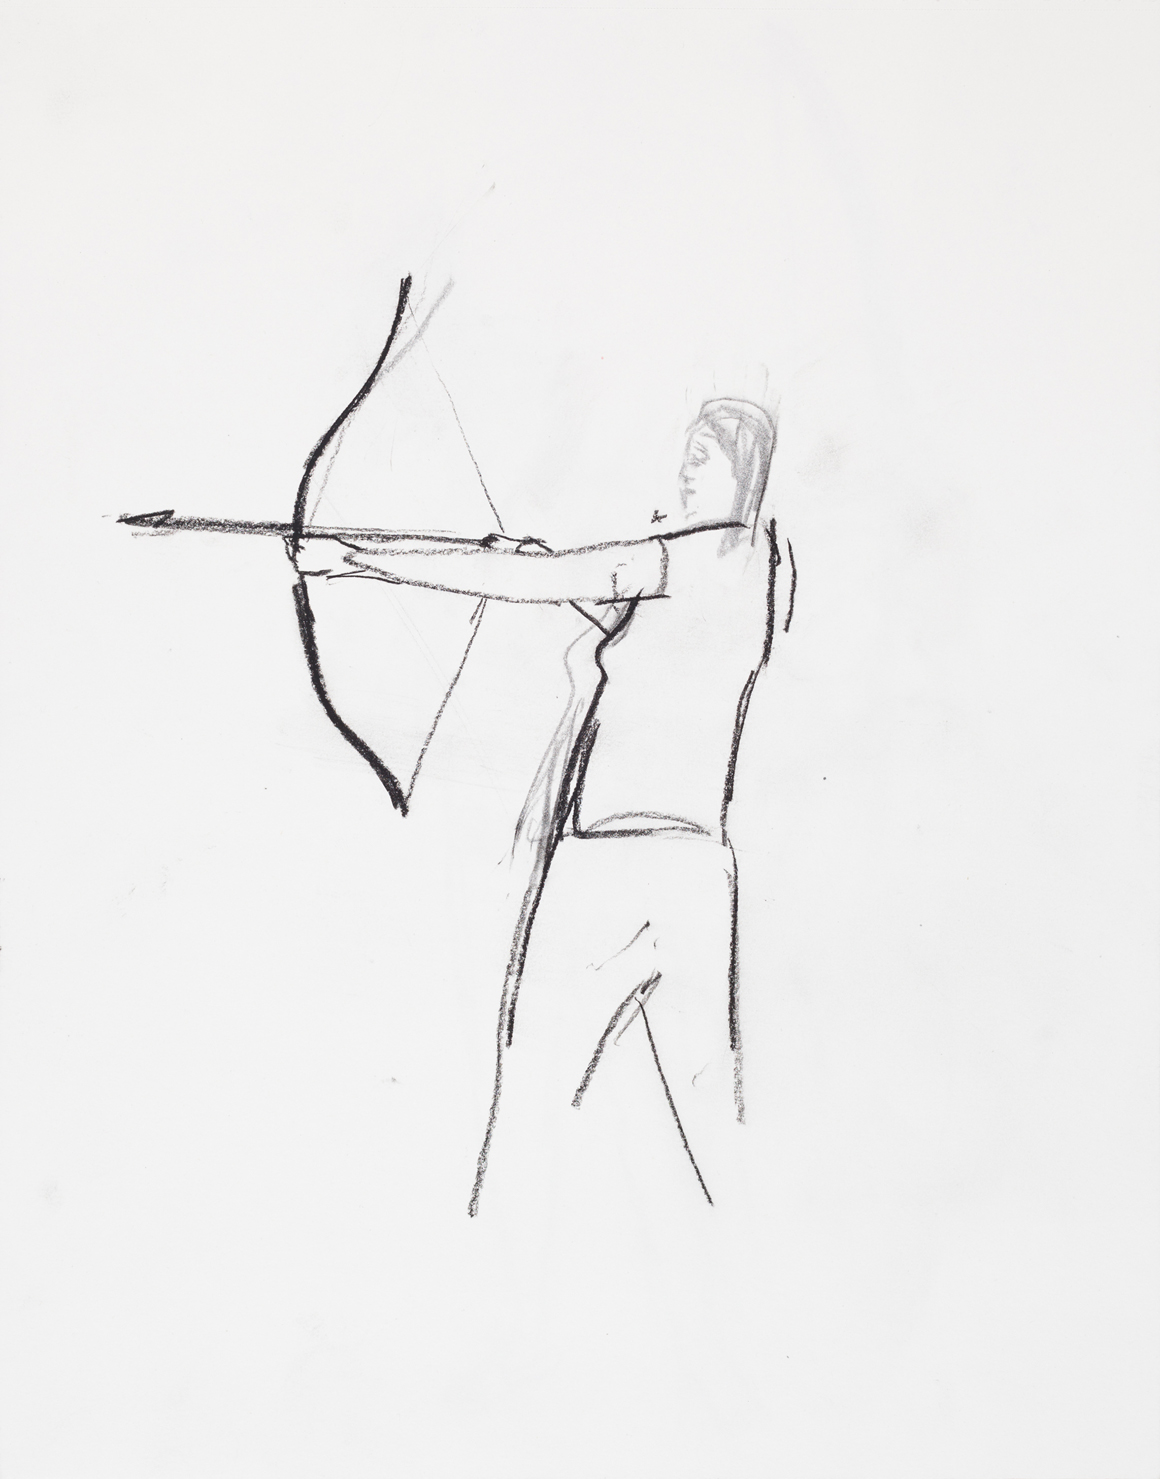 """<p><span class=""""name"""">William Stockman</span><br><em>Untitled (Archer 3)</em><span class='media'>charcoal on paper</span>14 x 11in 16 1/8i x 13 5/8in Framed<br>2014<br><a class='inquire' href='mailto:info@gildargallery.com?subject=Artwork Inquiry WSTO0041&body=I am interested in finding out more about Untitled (Archer 3) by William Stockman'>Inquire</a></p>"""